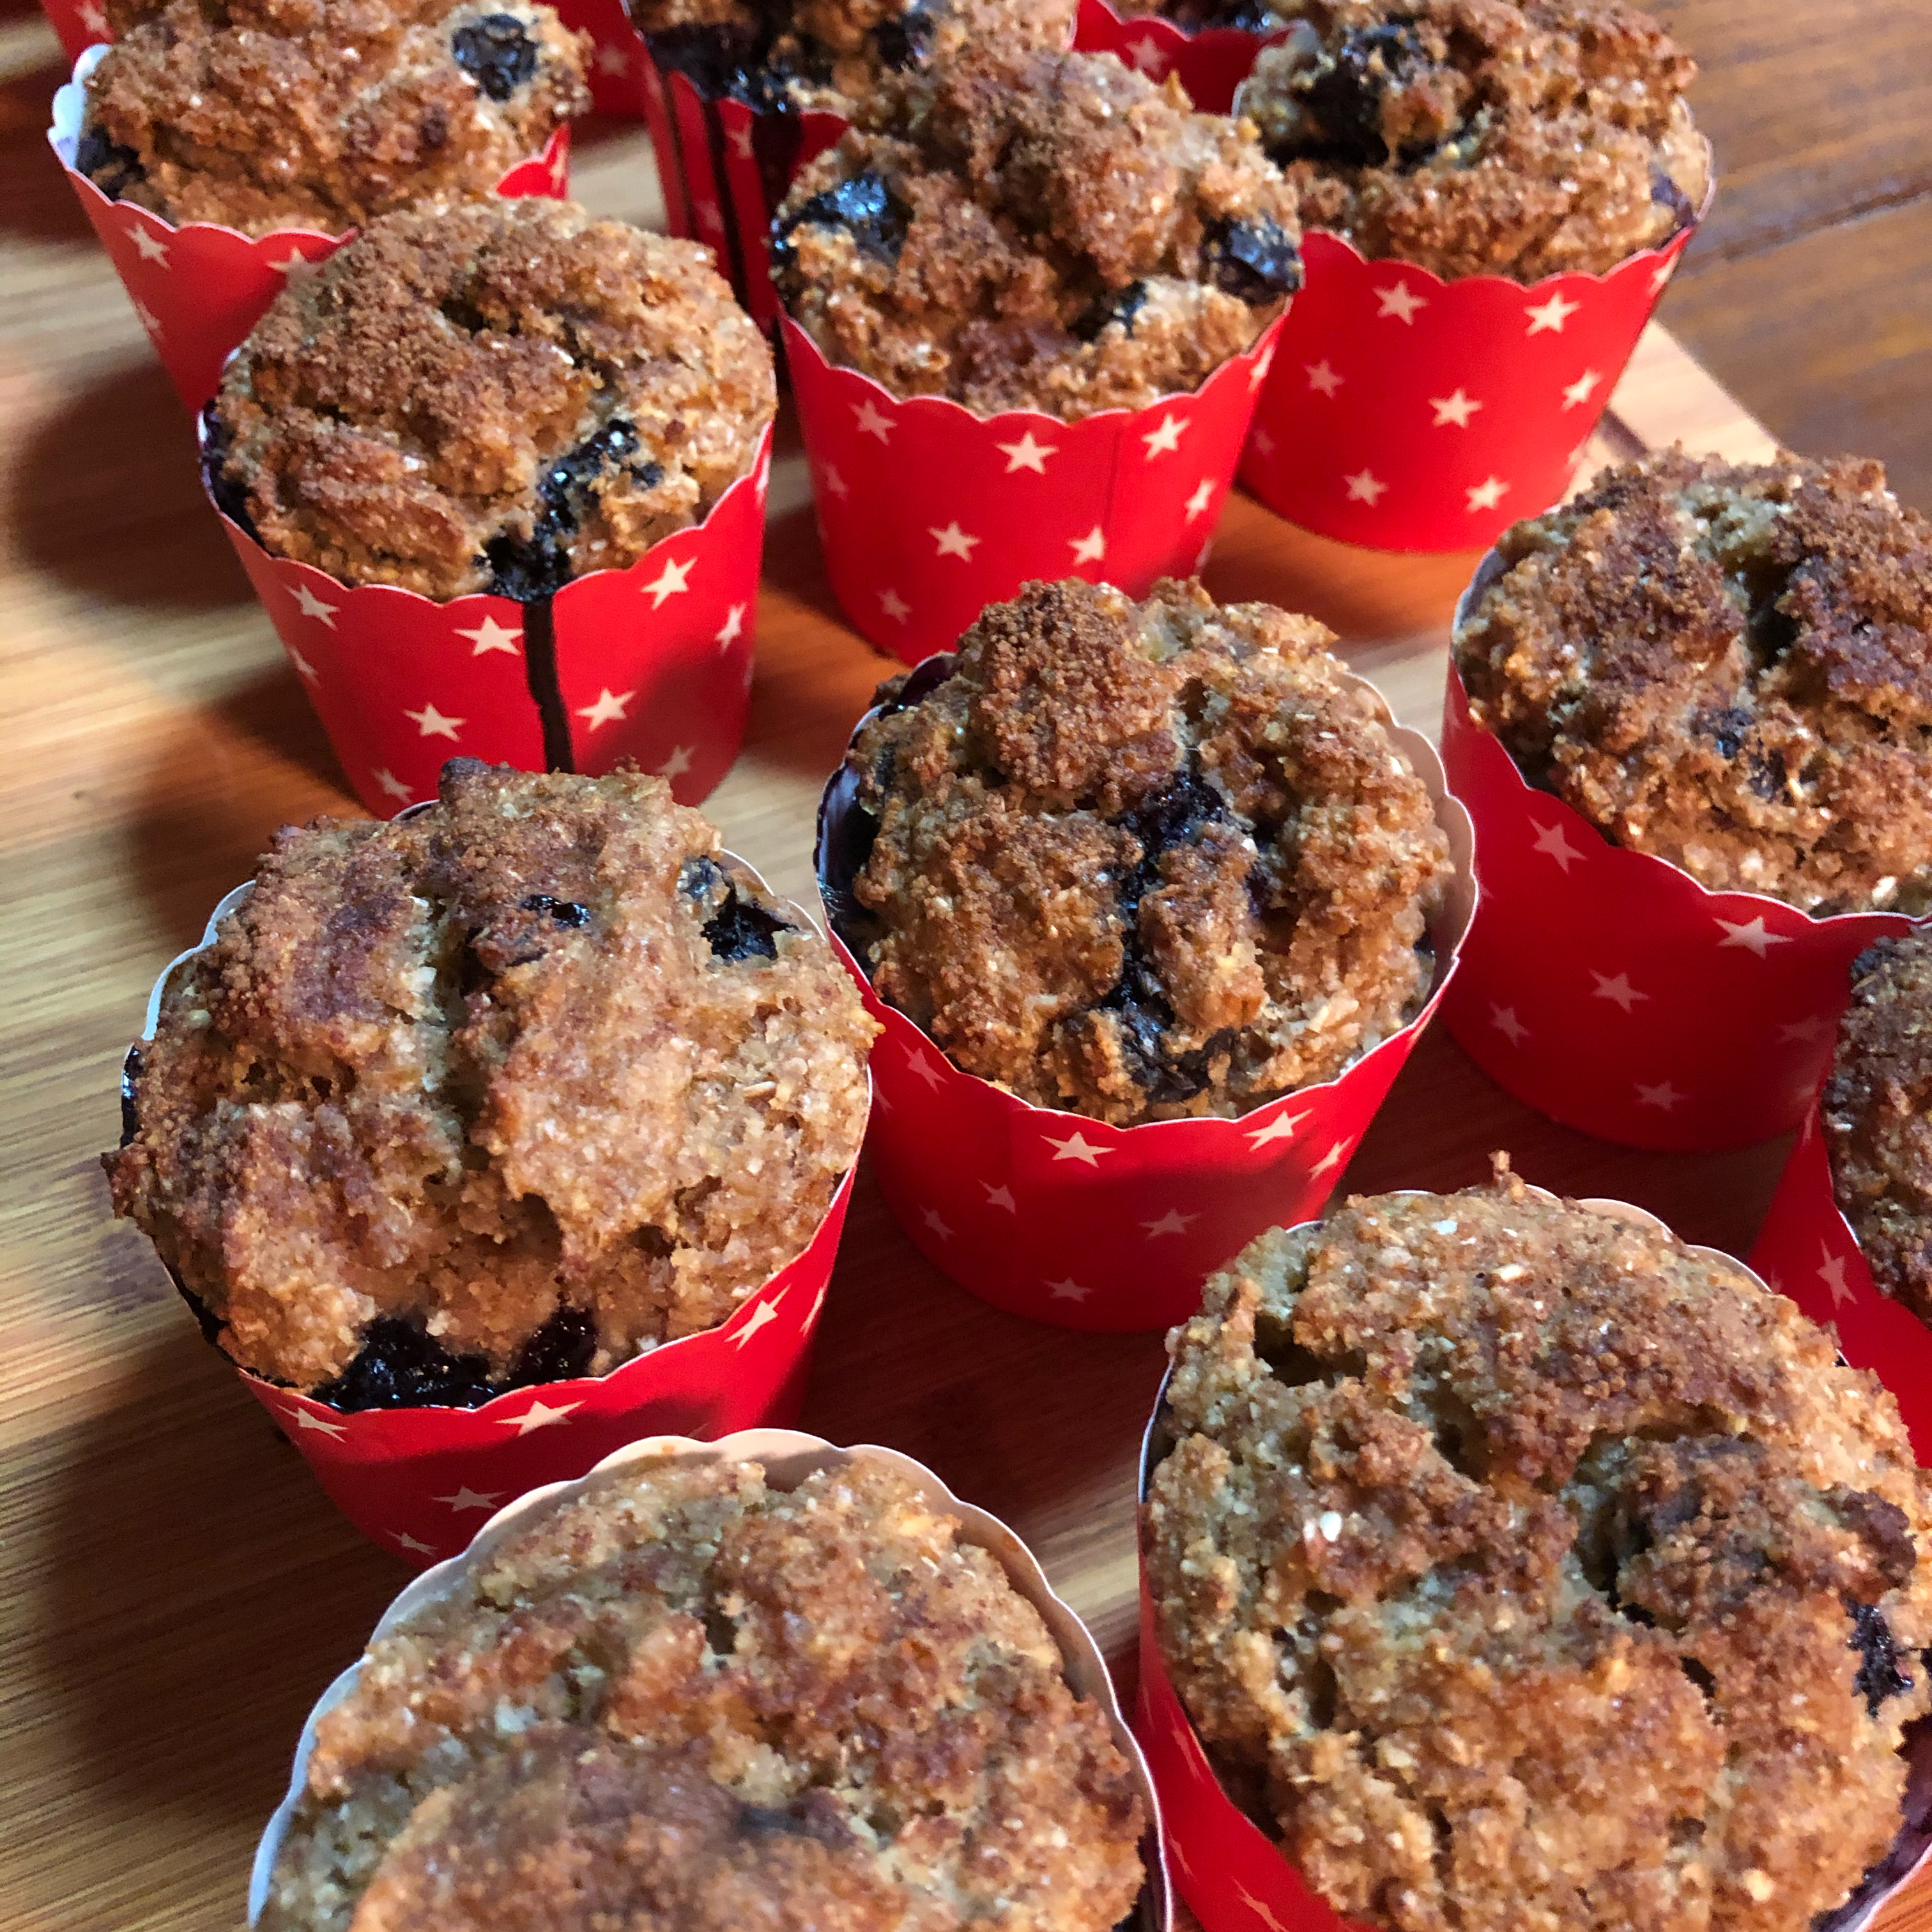 Eggless Blueberry Muffins with Applesauce, Almond Milk, and Almond Flour jinx